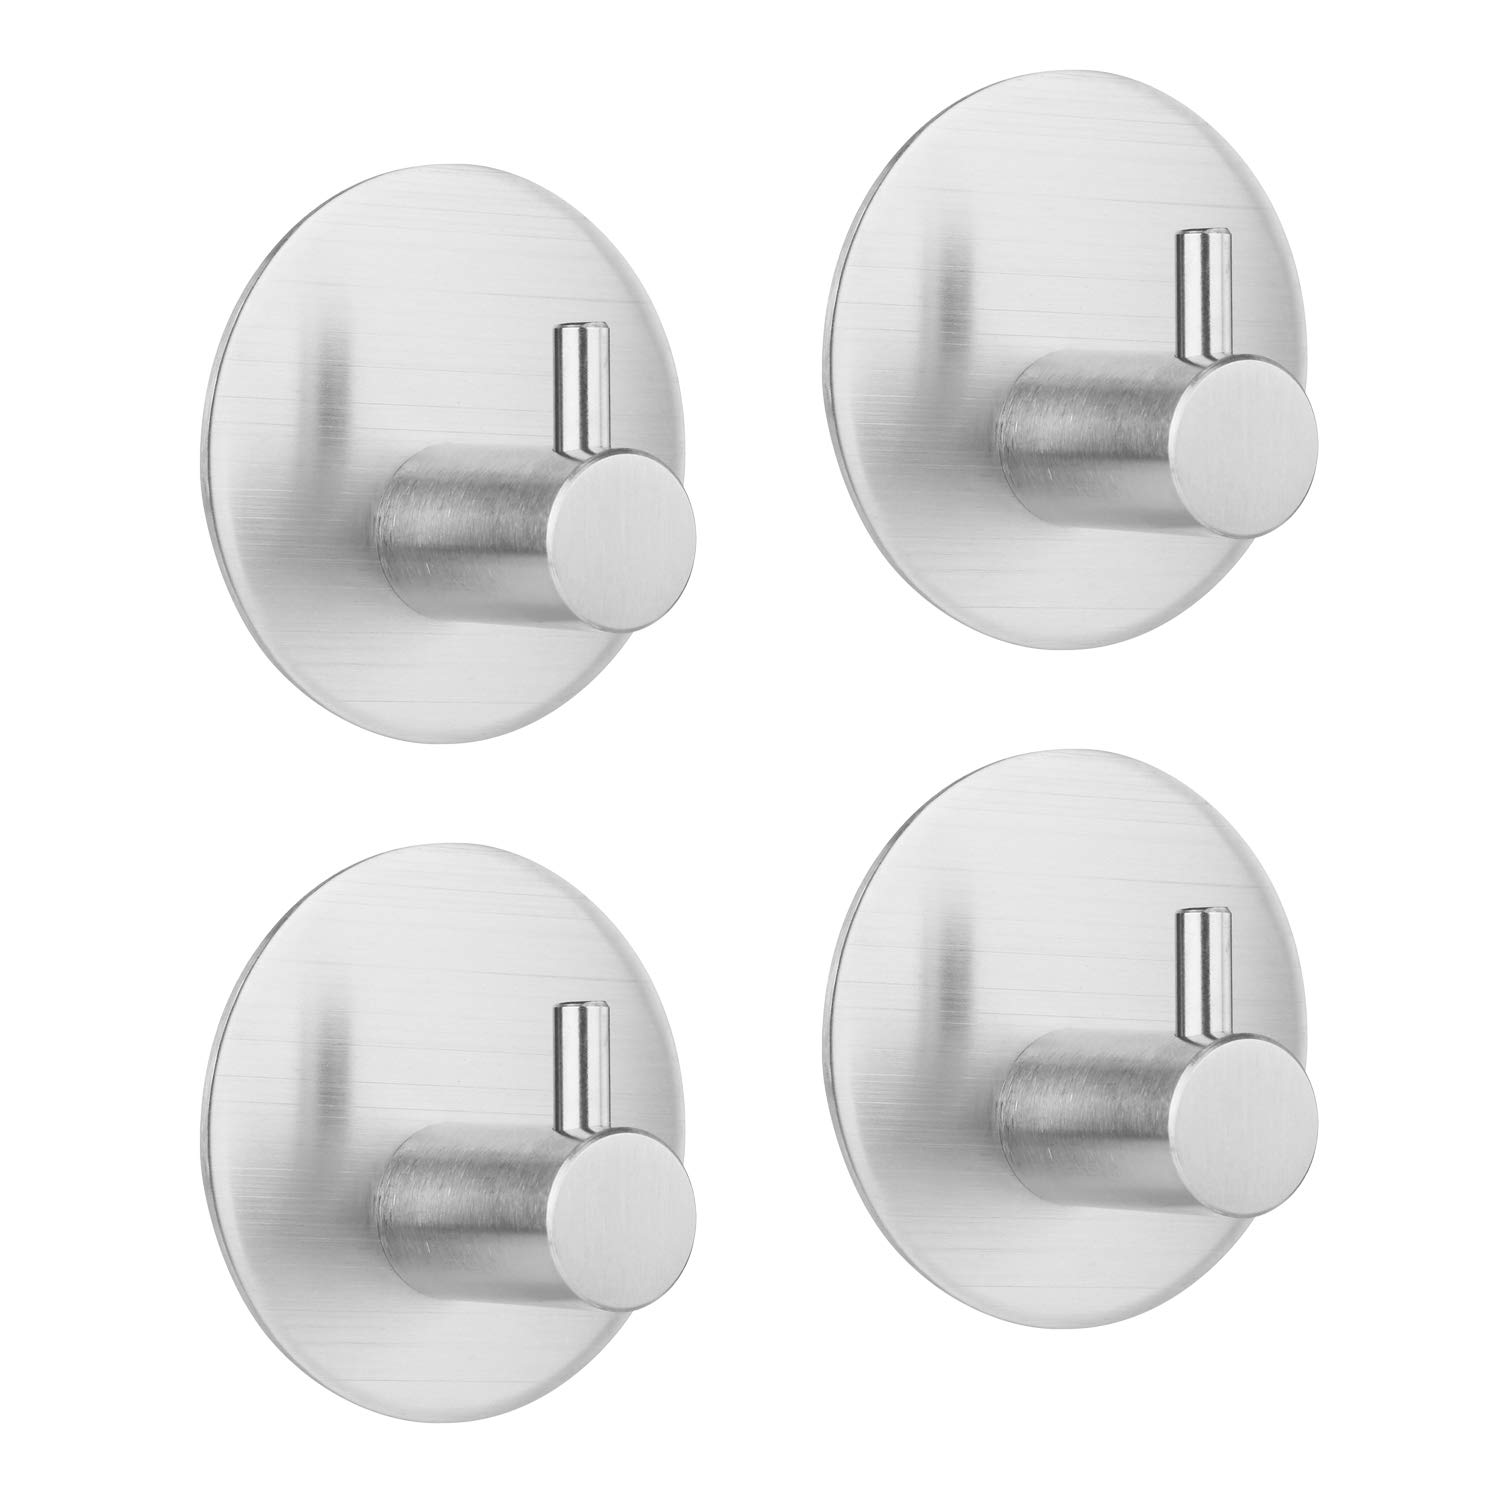 Hgery Self Adhesive Wall Hooks, 3M Adhesive Hooks for Towel Key Robe Coat, Super Strong Heavy Duty Stainless Steel Wall Mount Hooks, No Dill No Screw, Waterproof, for Kitchen Bathroom Toilet, 4 Pieces